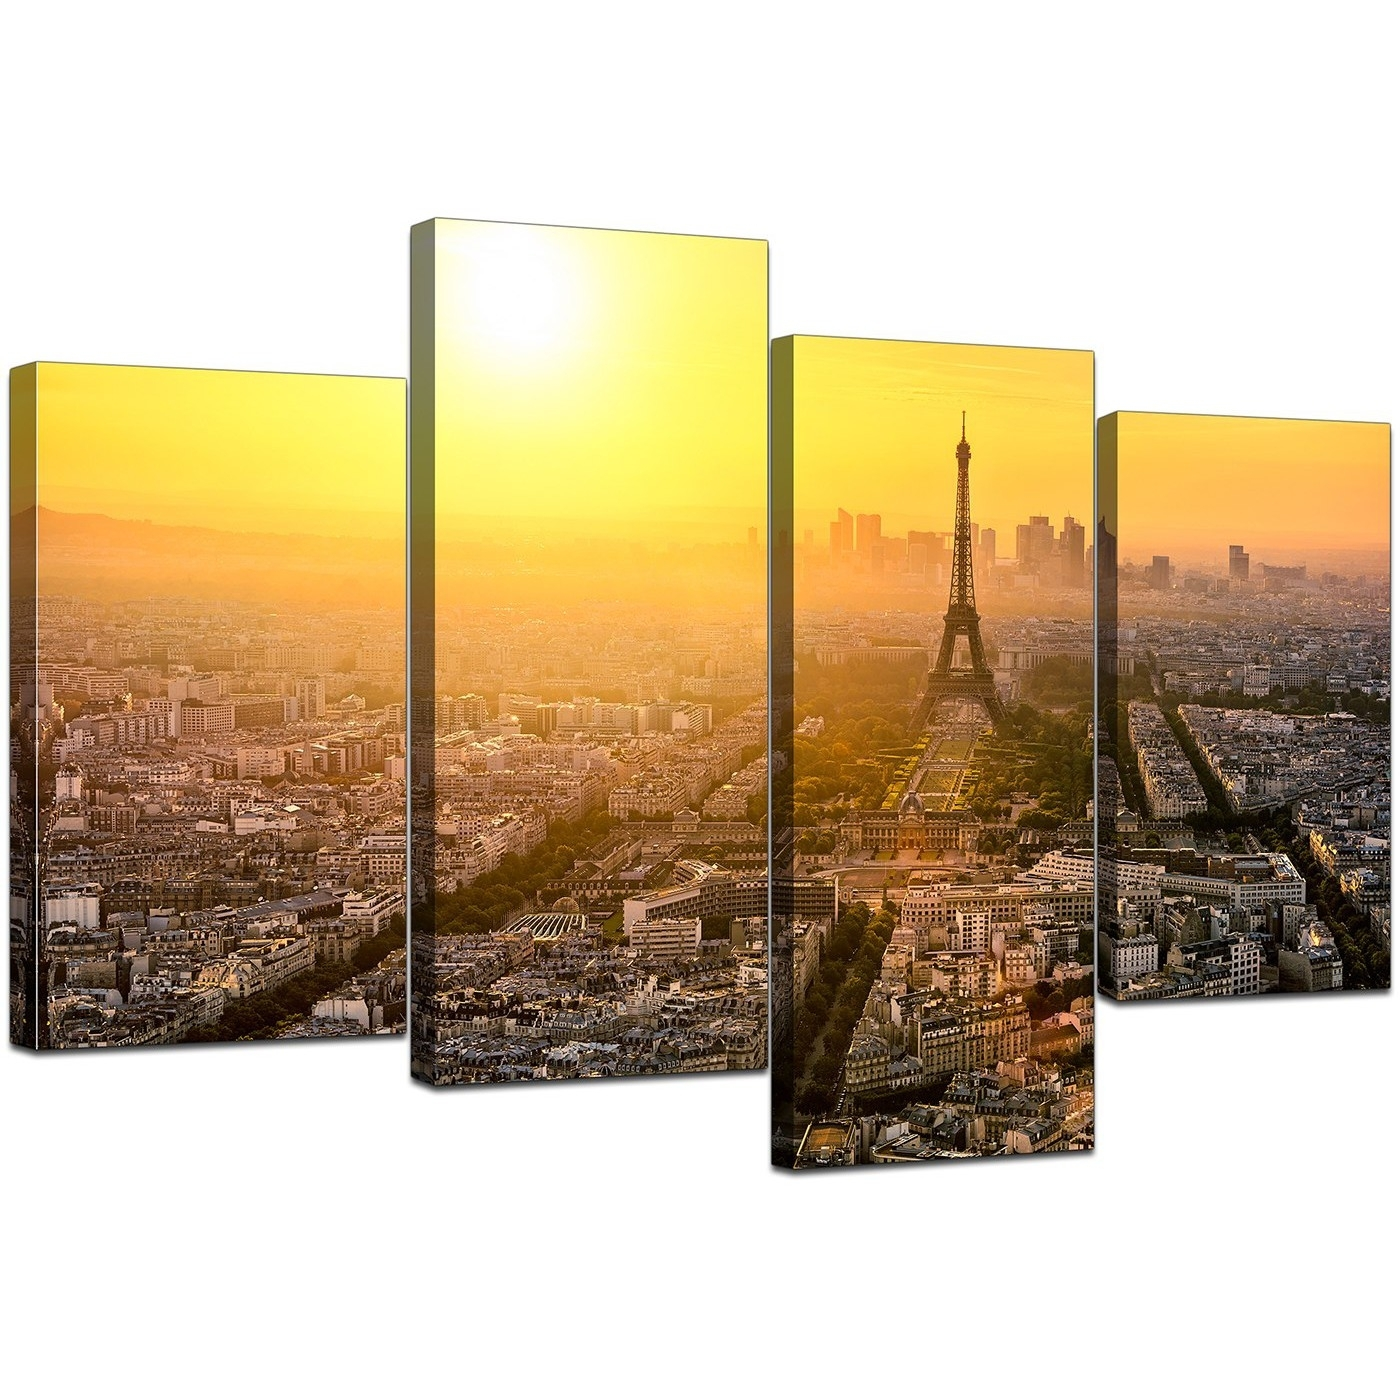 Canvas Art Of Eiffel Tower Paris For Your Hallway – Set Of 4 In Most Up To Date Canvas Wall Art Of Paris (View 6 of 15)